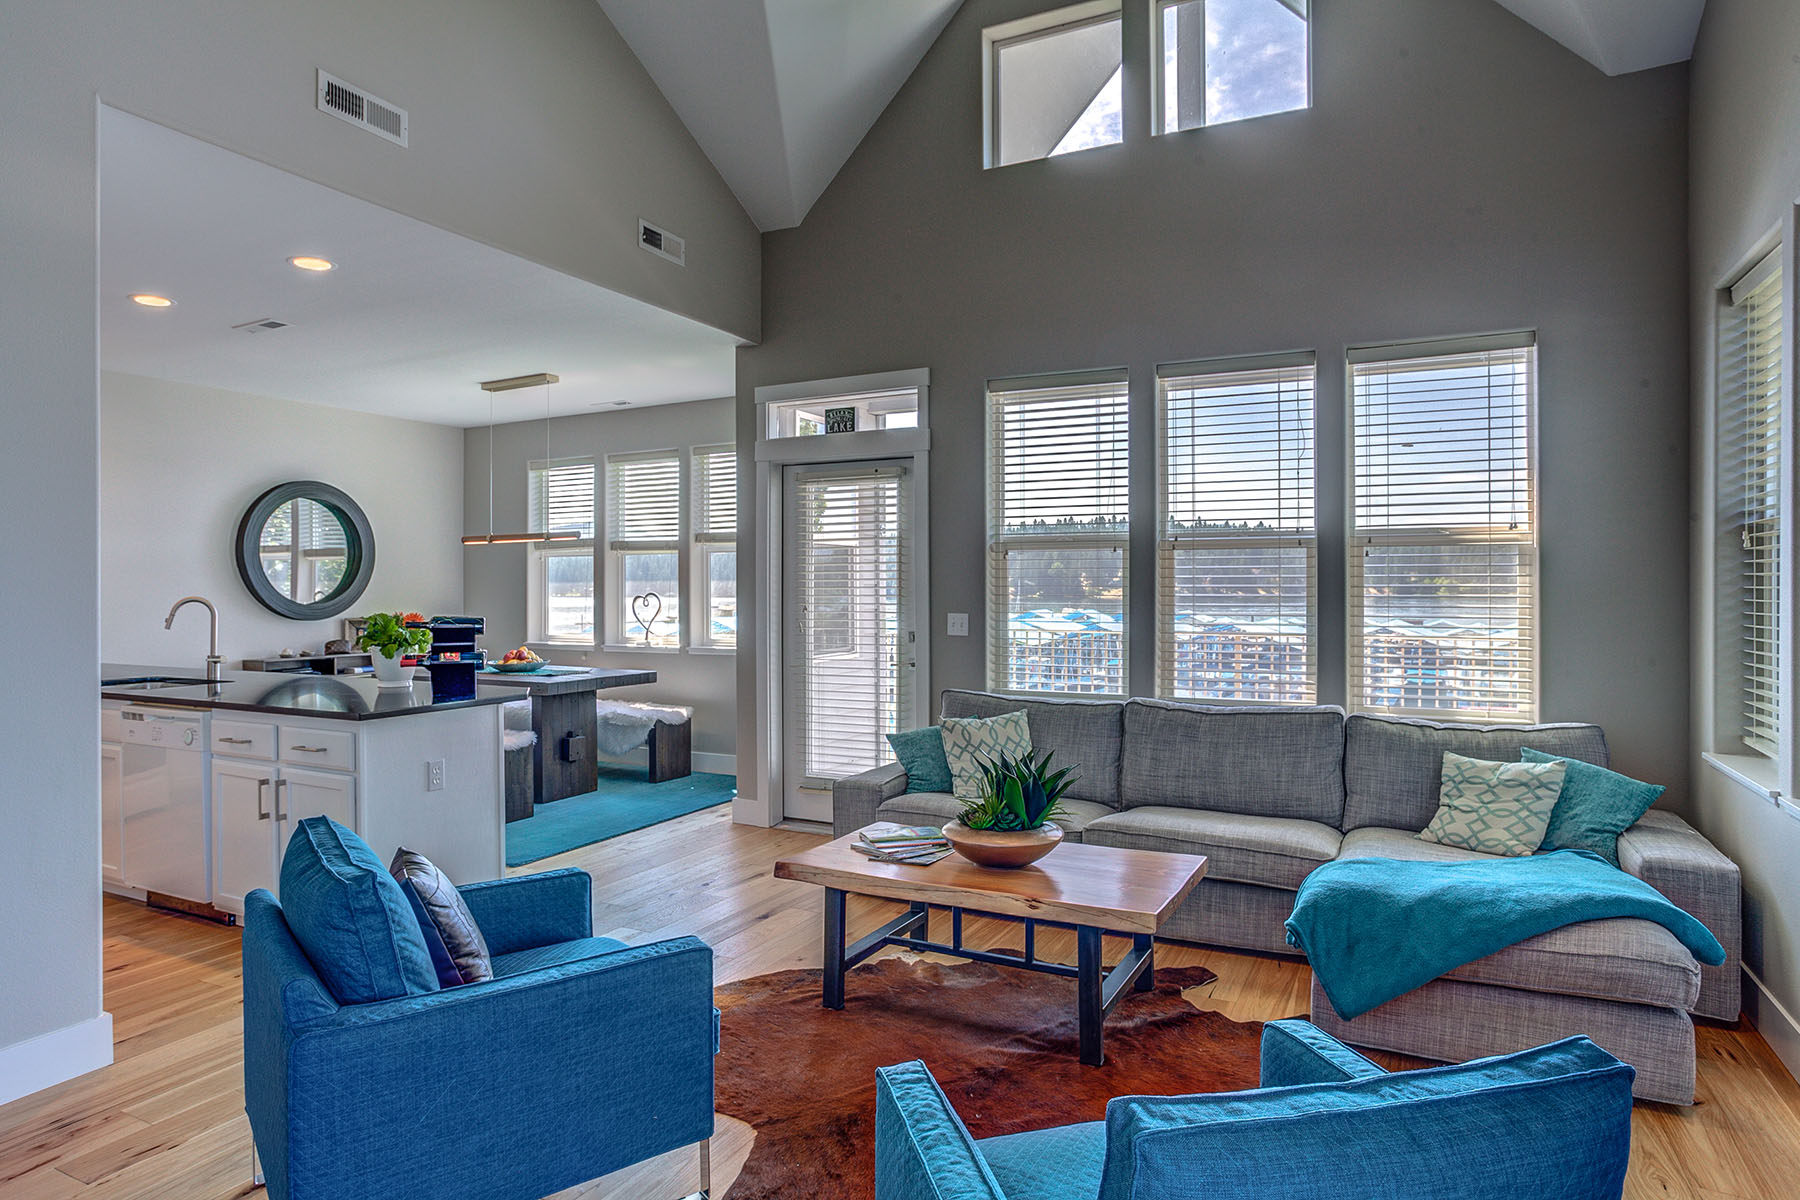 Condominium for Sale at Marina Condo At Holiday Shores 46700 Highway 200 #603, Hope, Idaho, 83836 United States